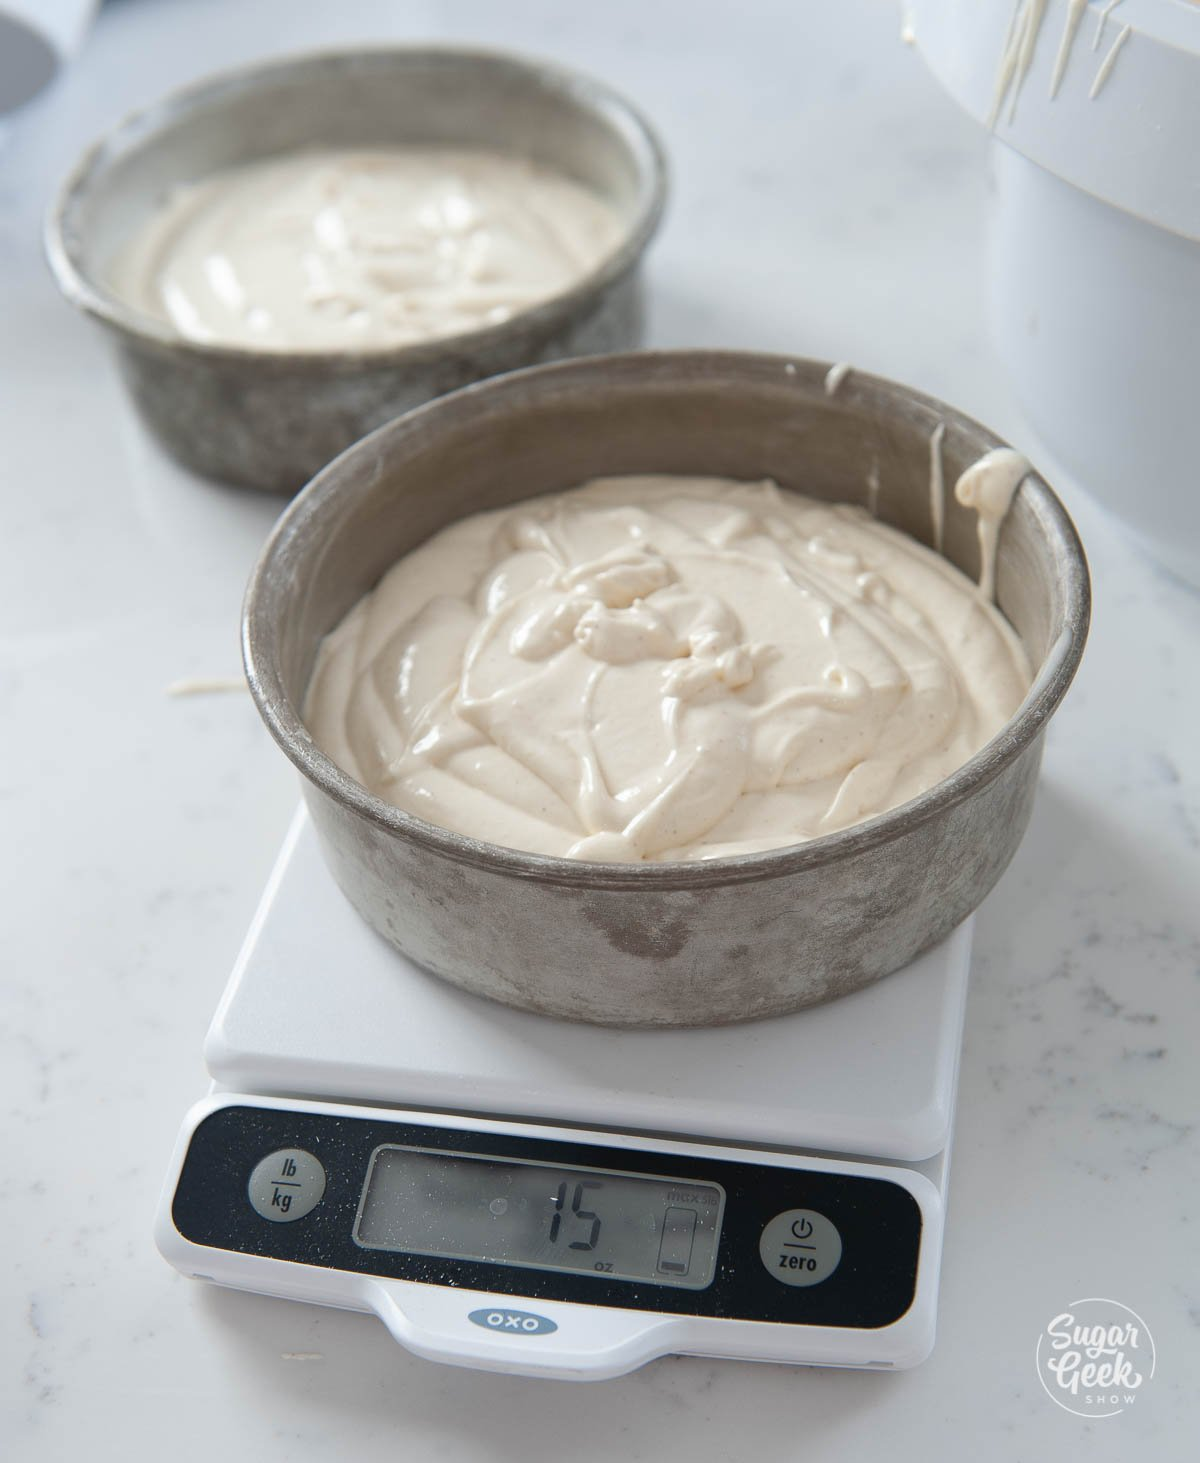 donut cake batter in a cake pan on a scale